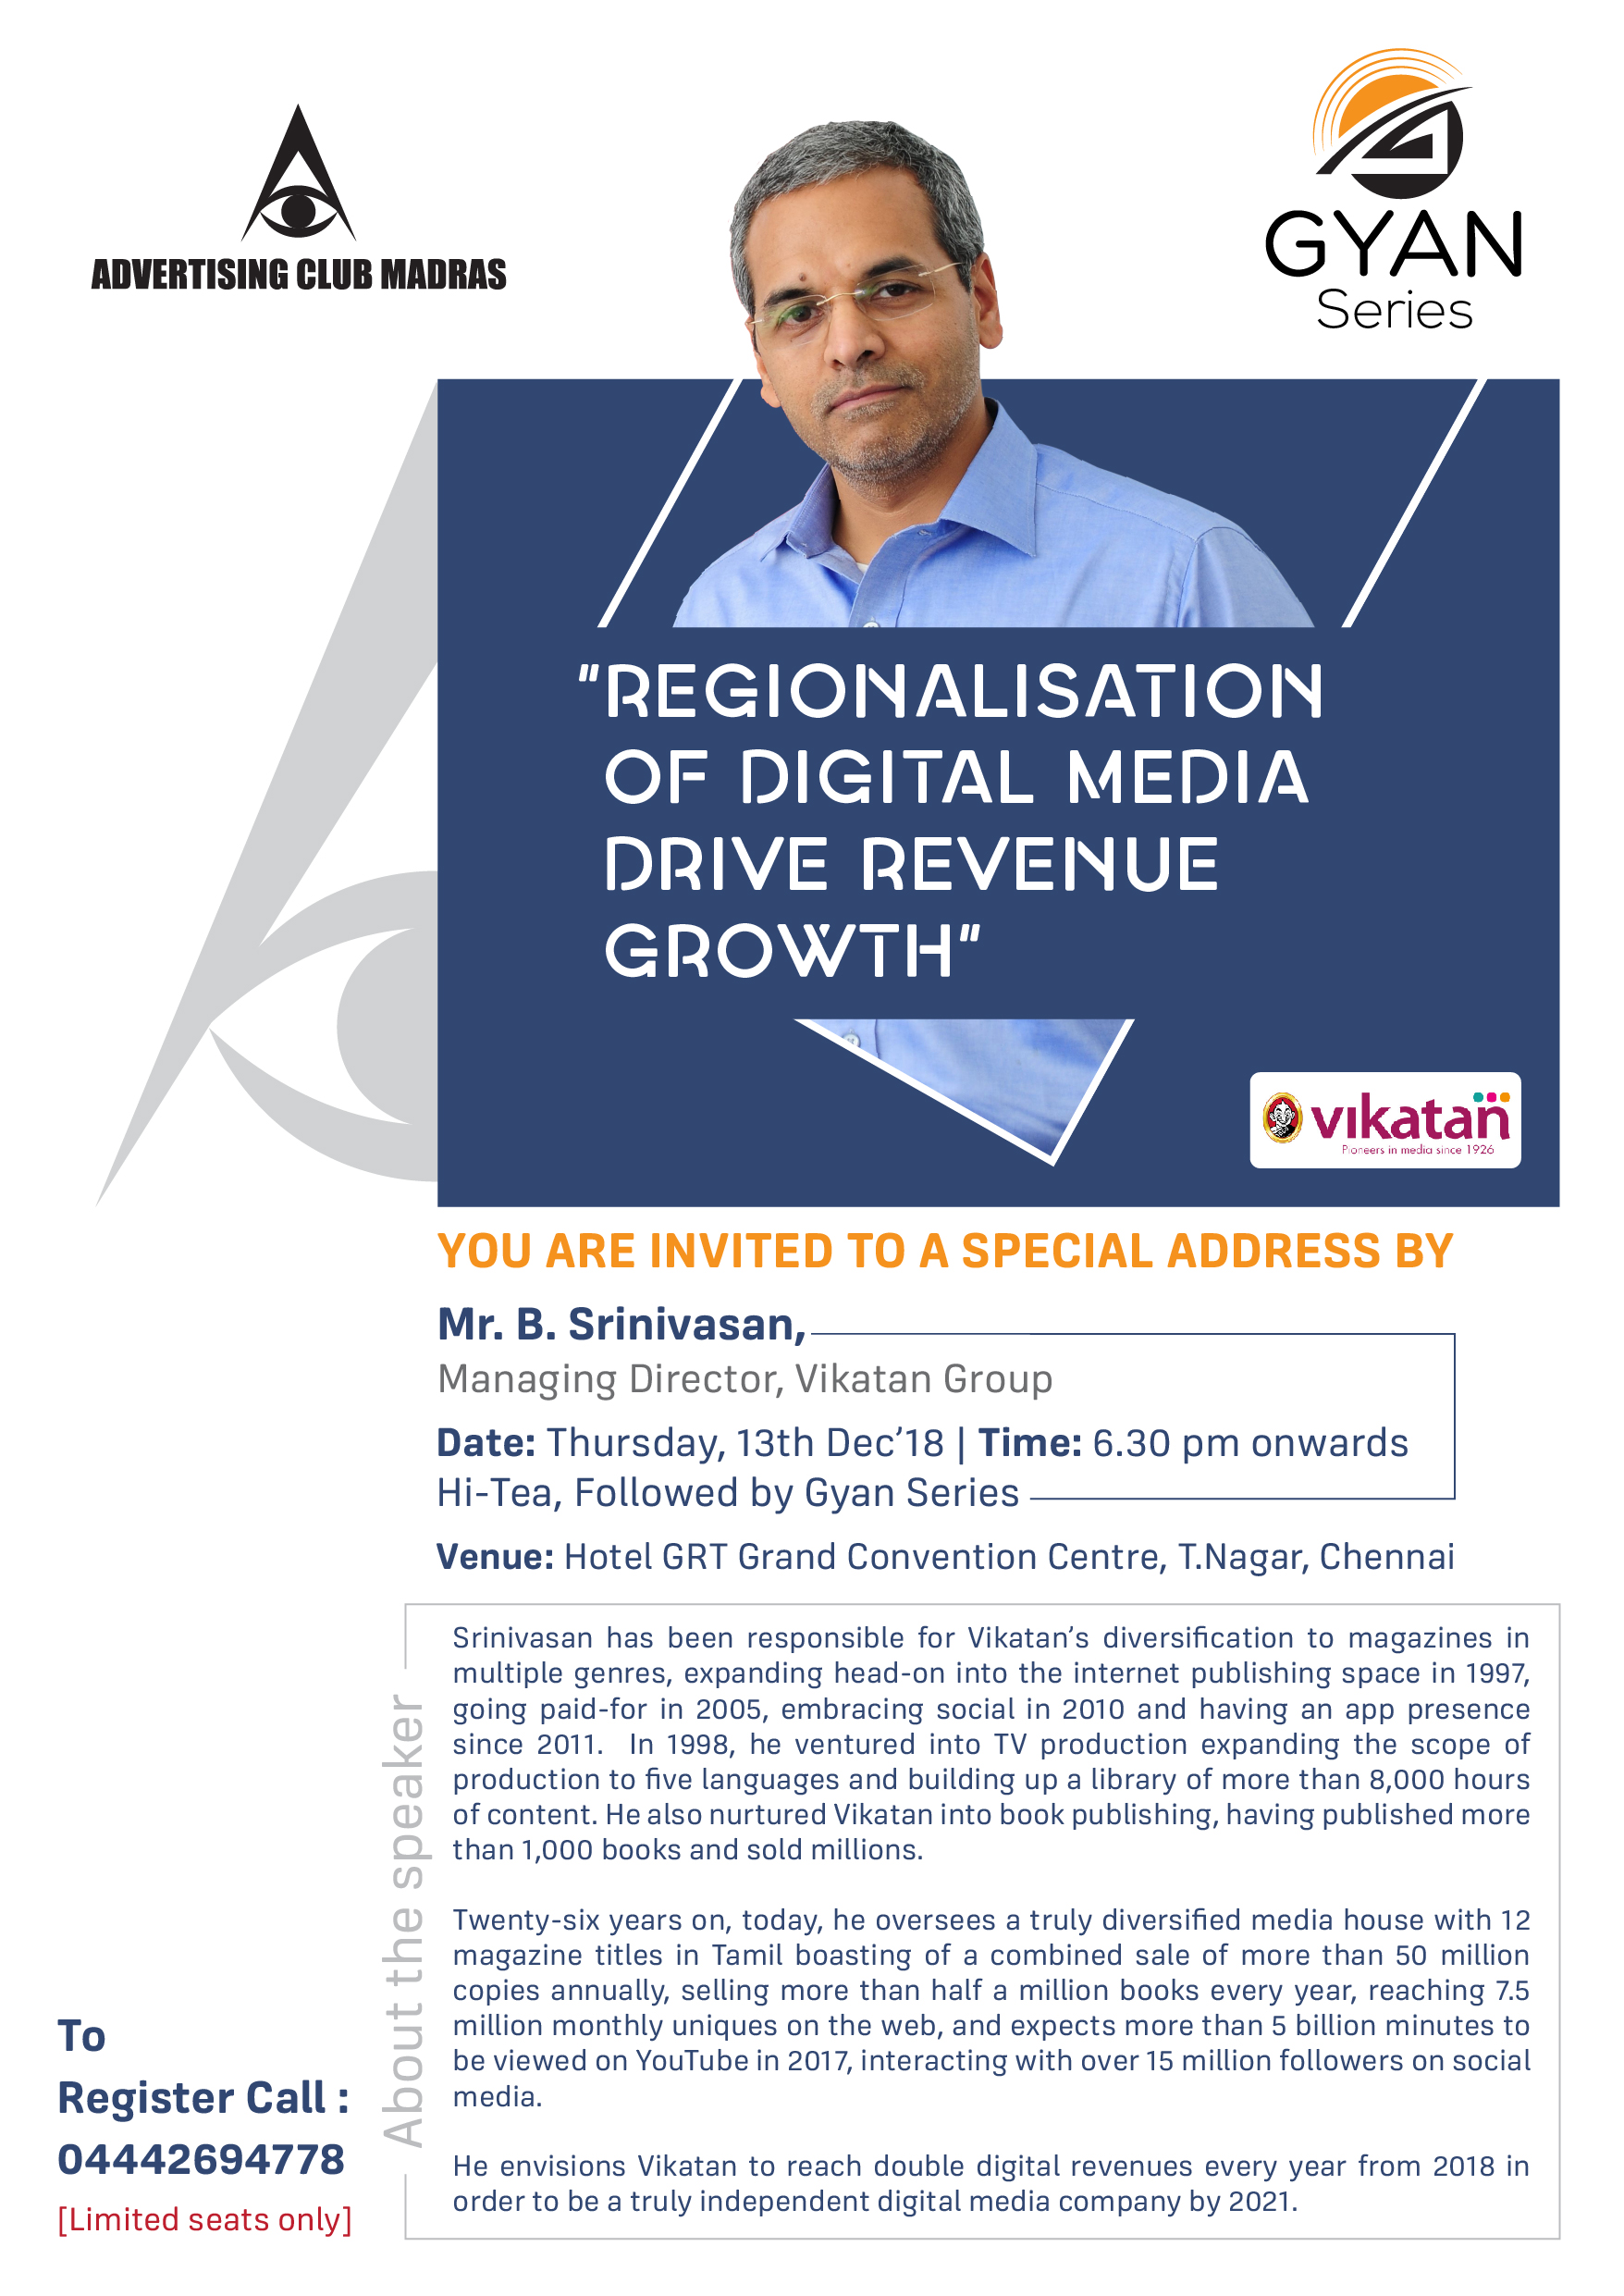 REGIONALISATION OF DIGITAL MEDIA DRIVE REVENUE GROWTH